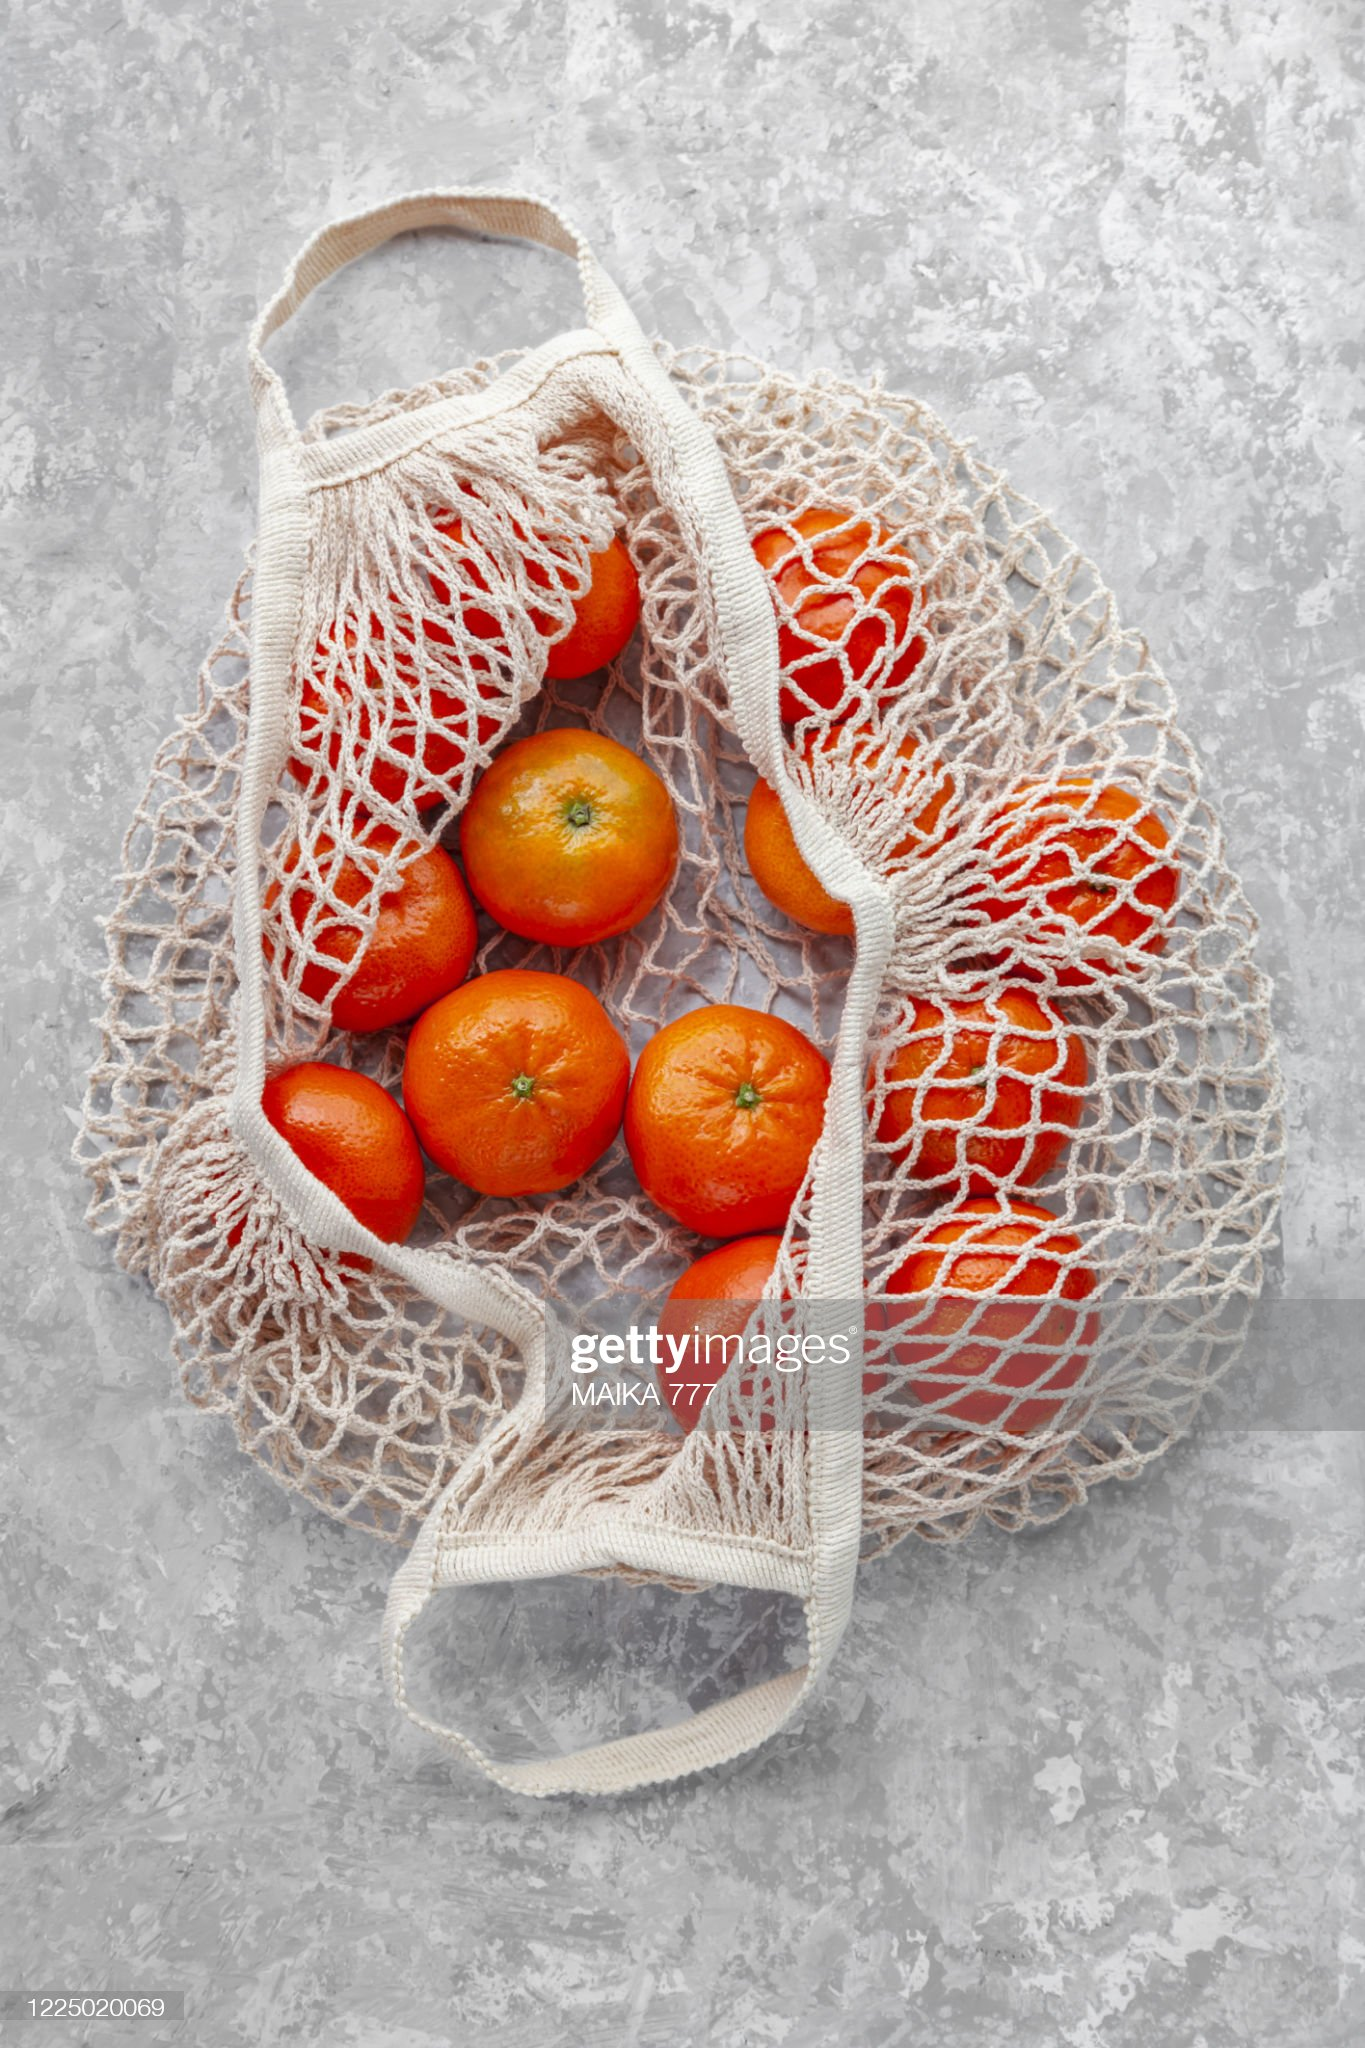 Cotton mesh grocery shopping bag reusable containing tangerines, against gray background, close-up : Stock Photo